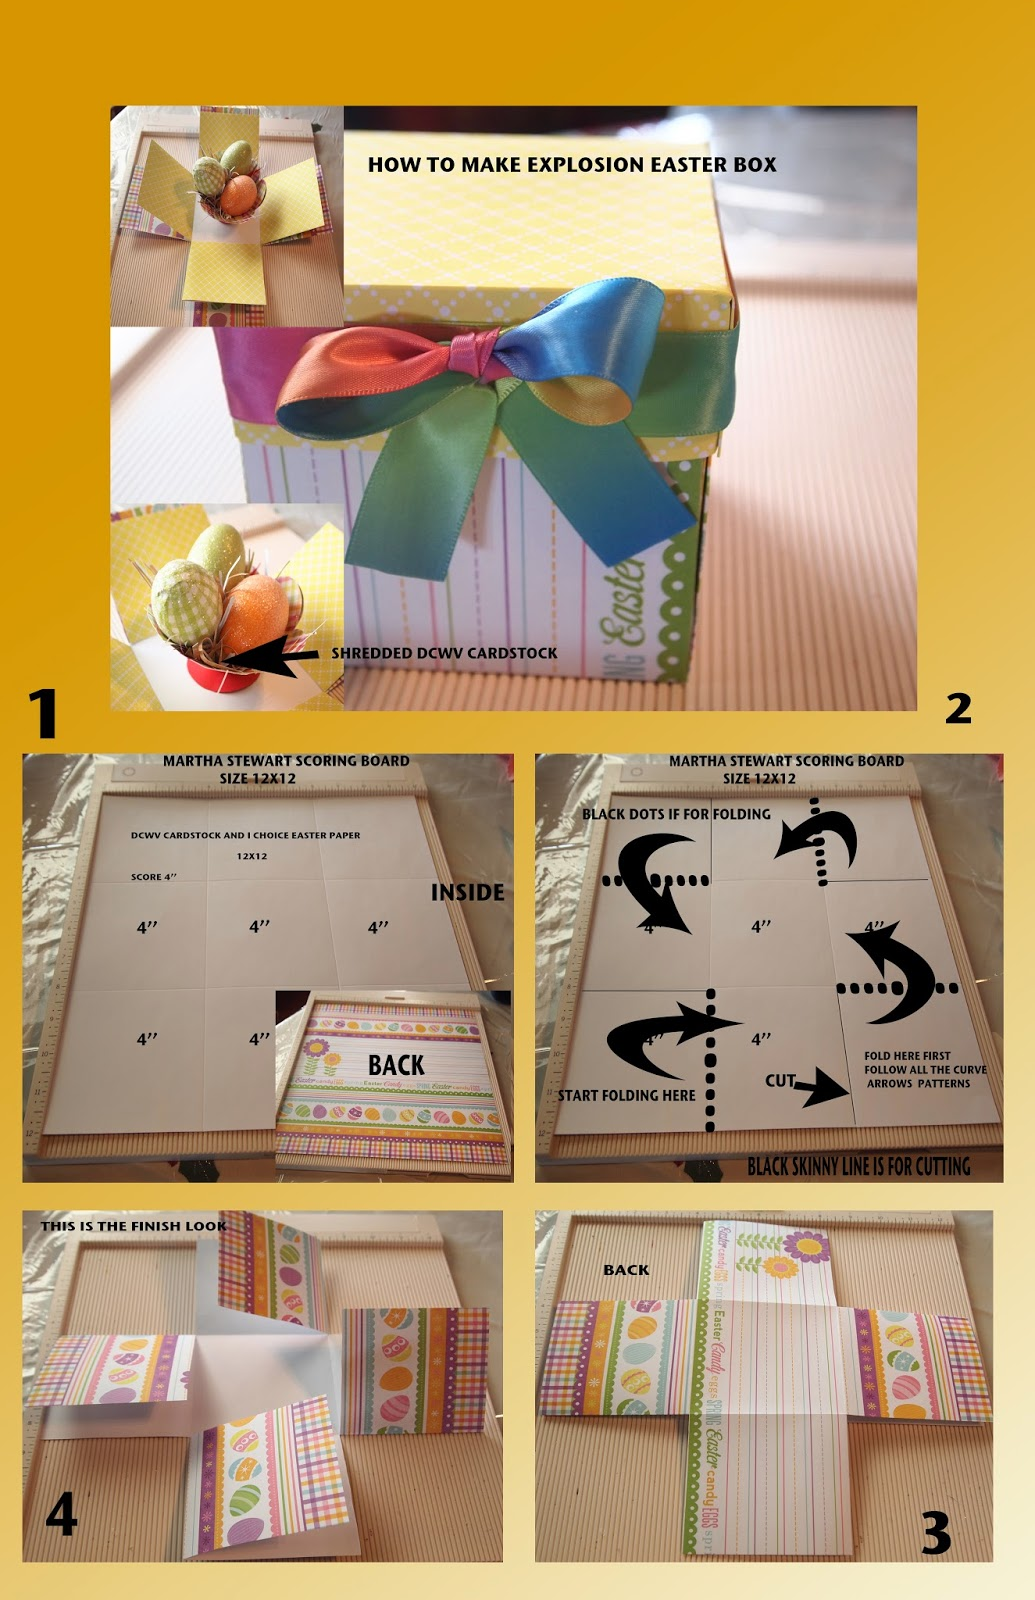 Diy crafting how to make explosion easter gift box how to make explosion easter gift box negle Gallery